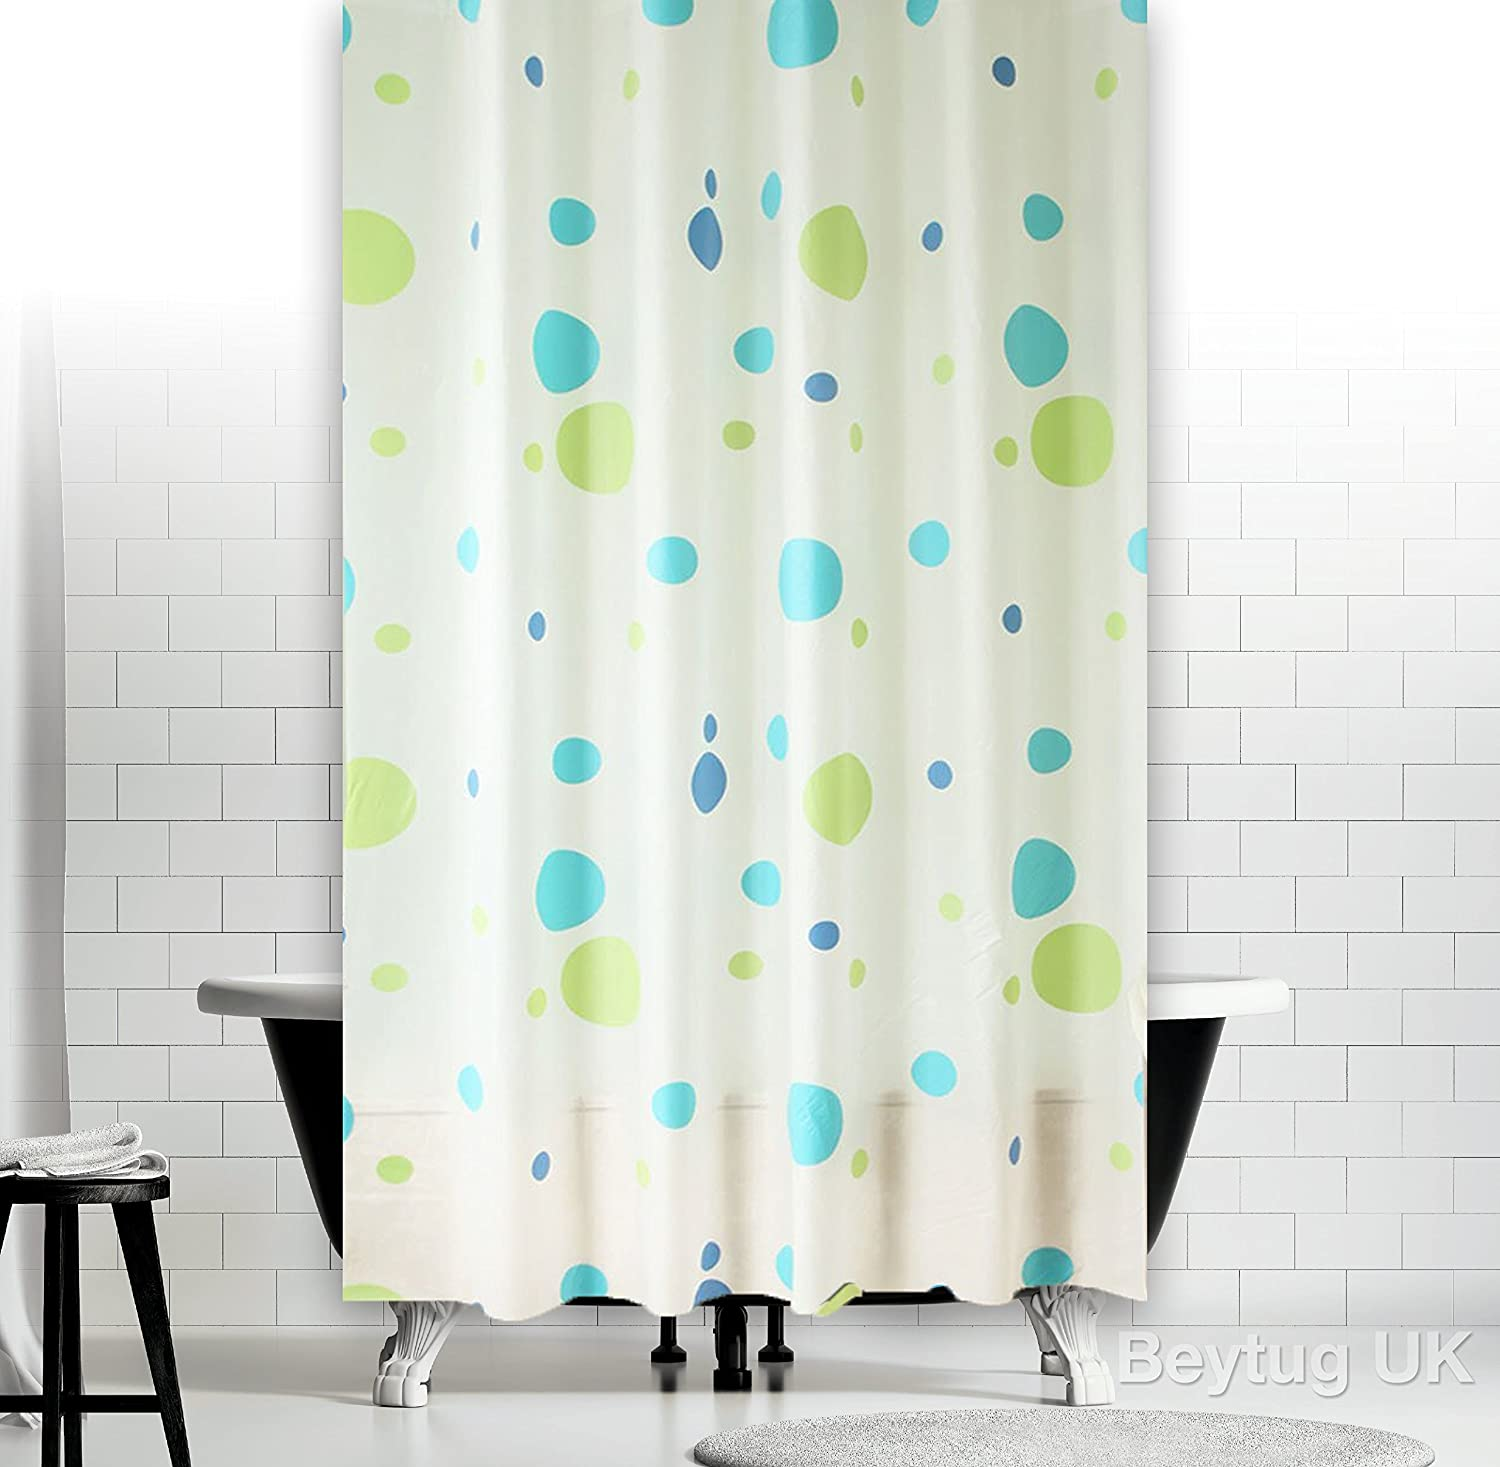 Colorful Fabric Bathroom Shower Curtain Extra Long with Hooks 180*180 CM